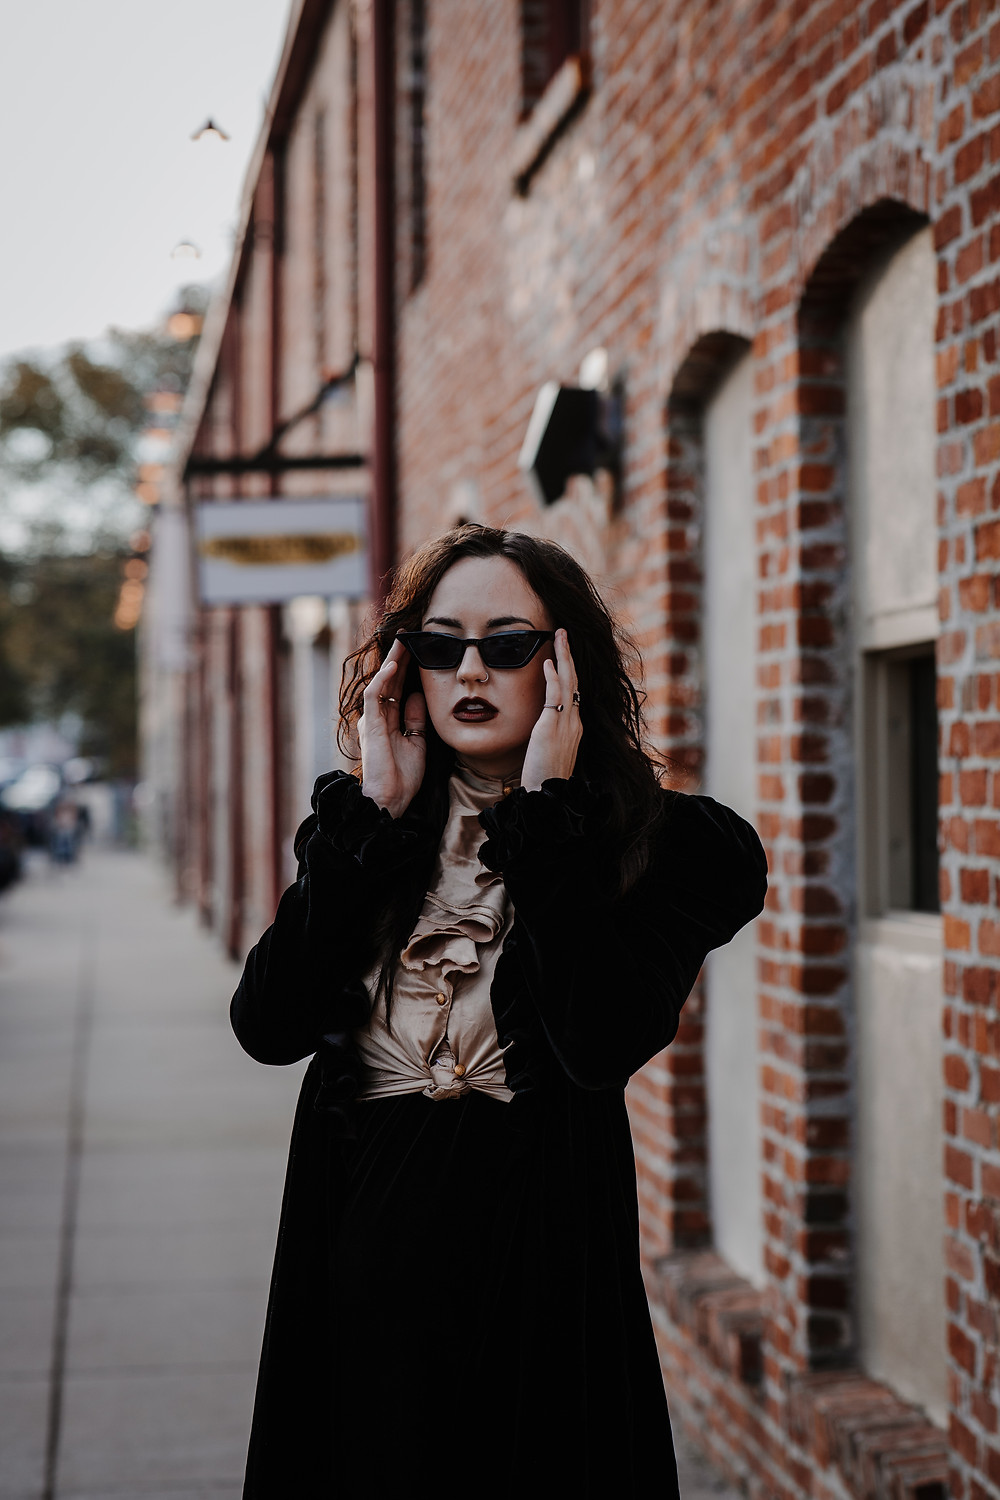 lifestyle blog session shoot Nashville TN Tennessee local talent model lookbook ootd kardashians anxiety depression Enneagram mental health counseling counselor Goth Gothic faith God Jesus love self care she is balanced 20s twenties how to be